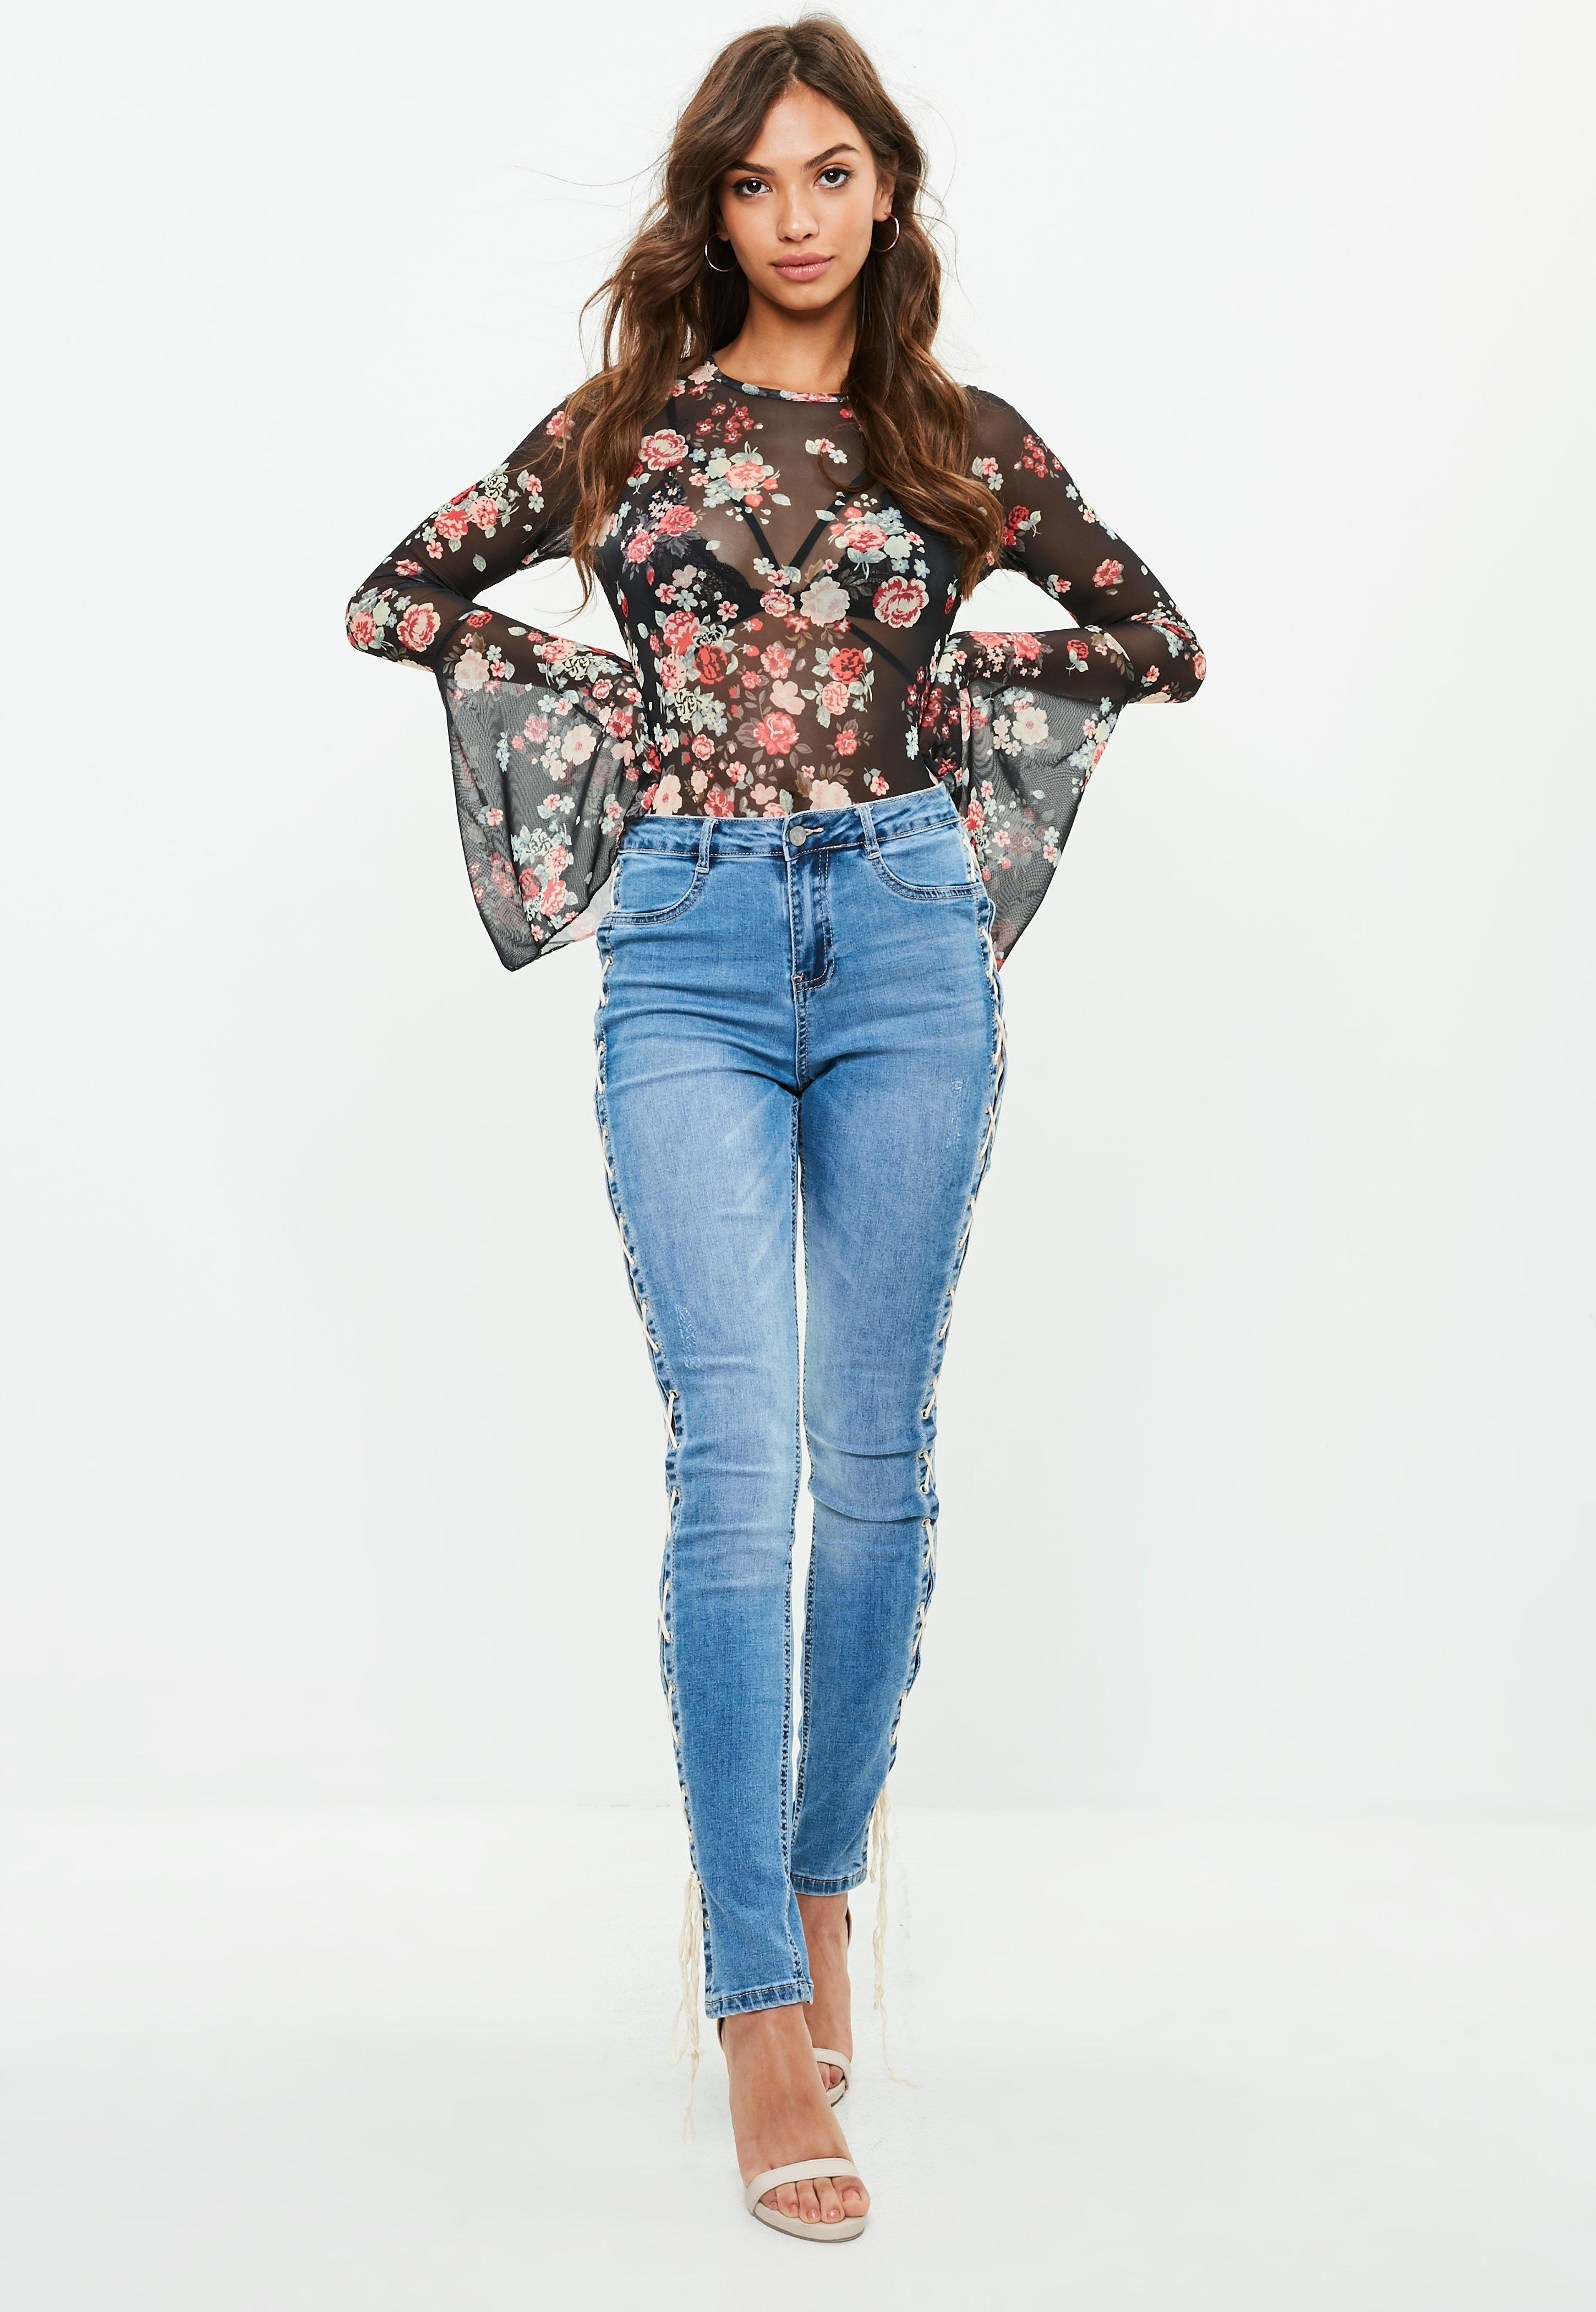 Outlet Professional Flared Sleeve Floral Body - Blue Missguided Tall Many Kinds Of Cheap Online Outlet Store Cheap Price Cheap Best Seller Cheap Purchase 1OL0X9